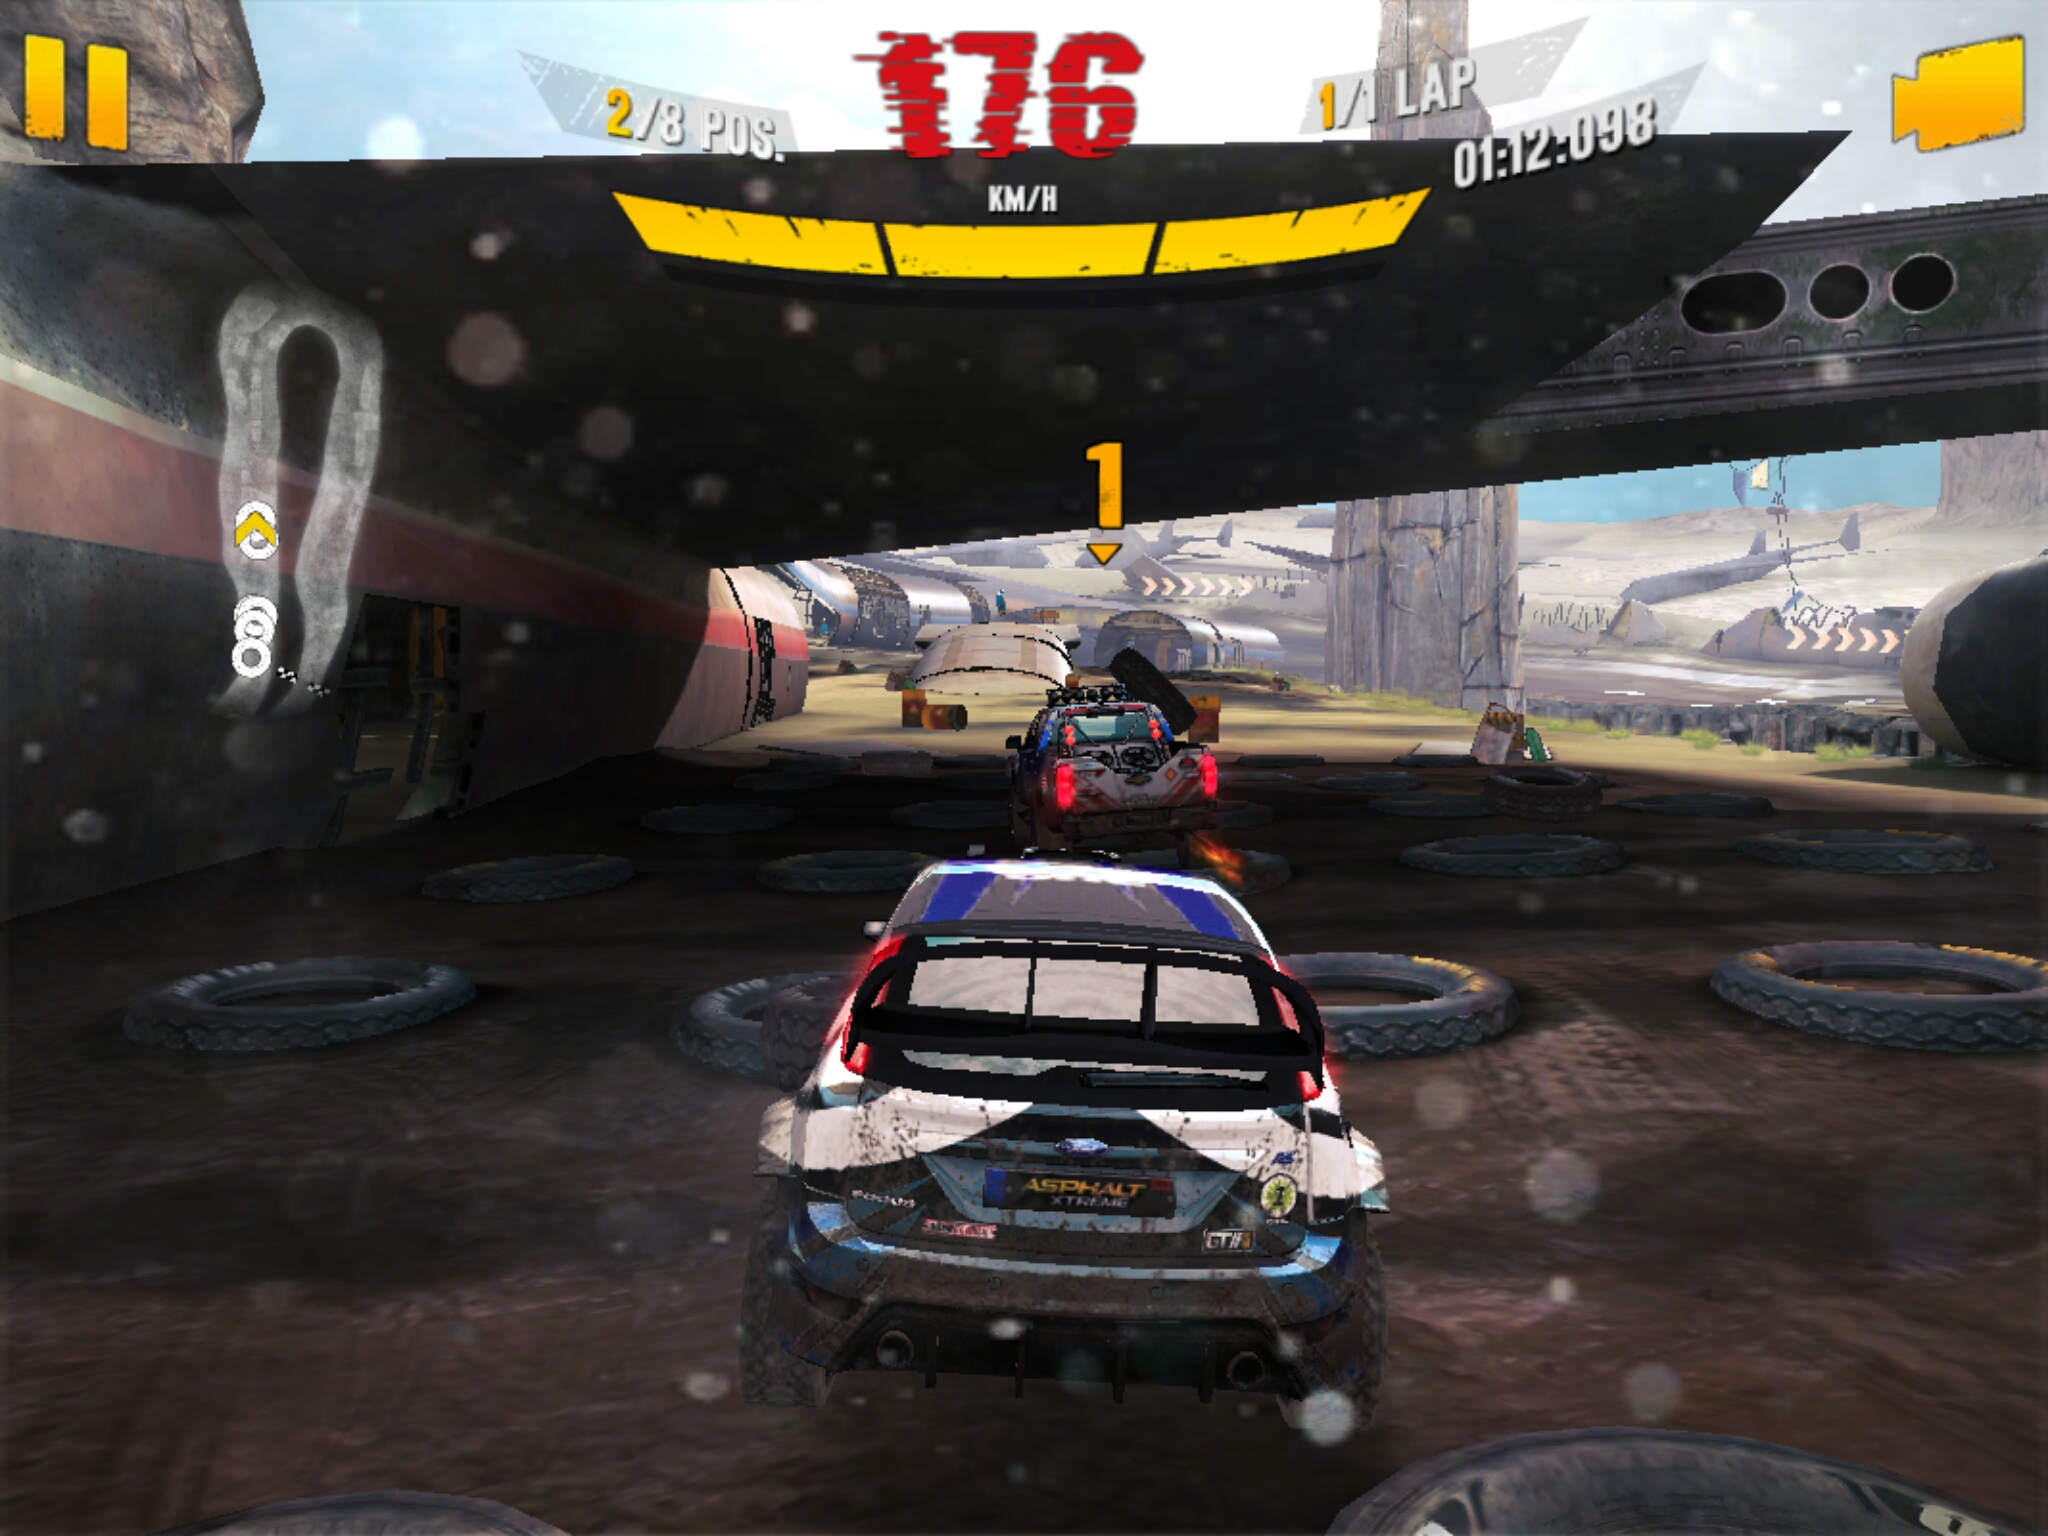 The Asphalt series is THE premier racing game on Android platforms, making really good use of the built in accelerometer for controls. This is the latest one I believe, Asphalt X-Treme. While the main stars running the game are only 2 A72 cores, the game still runs at 60fps out of the box almost all the time.